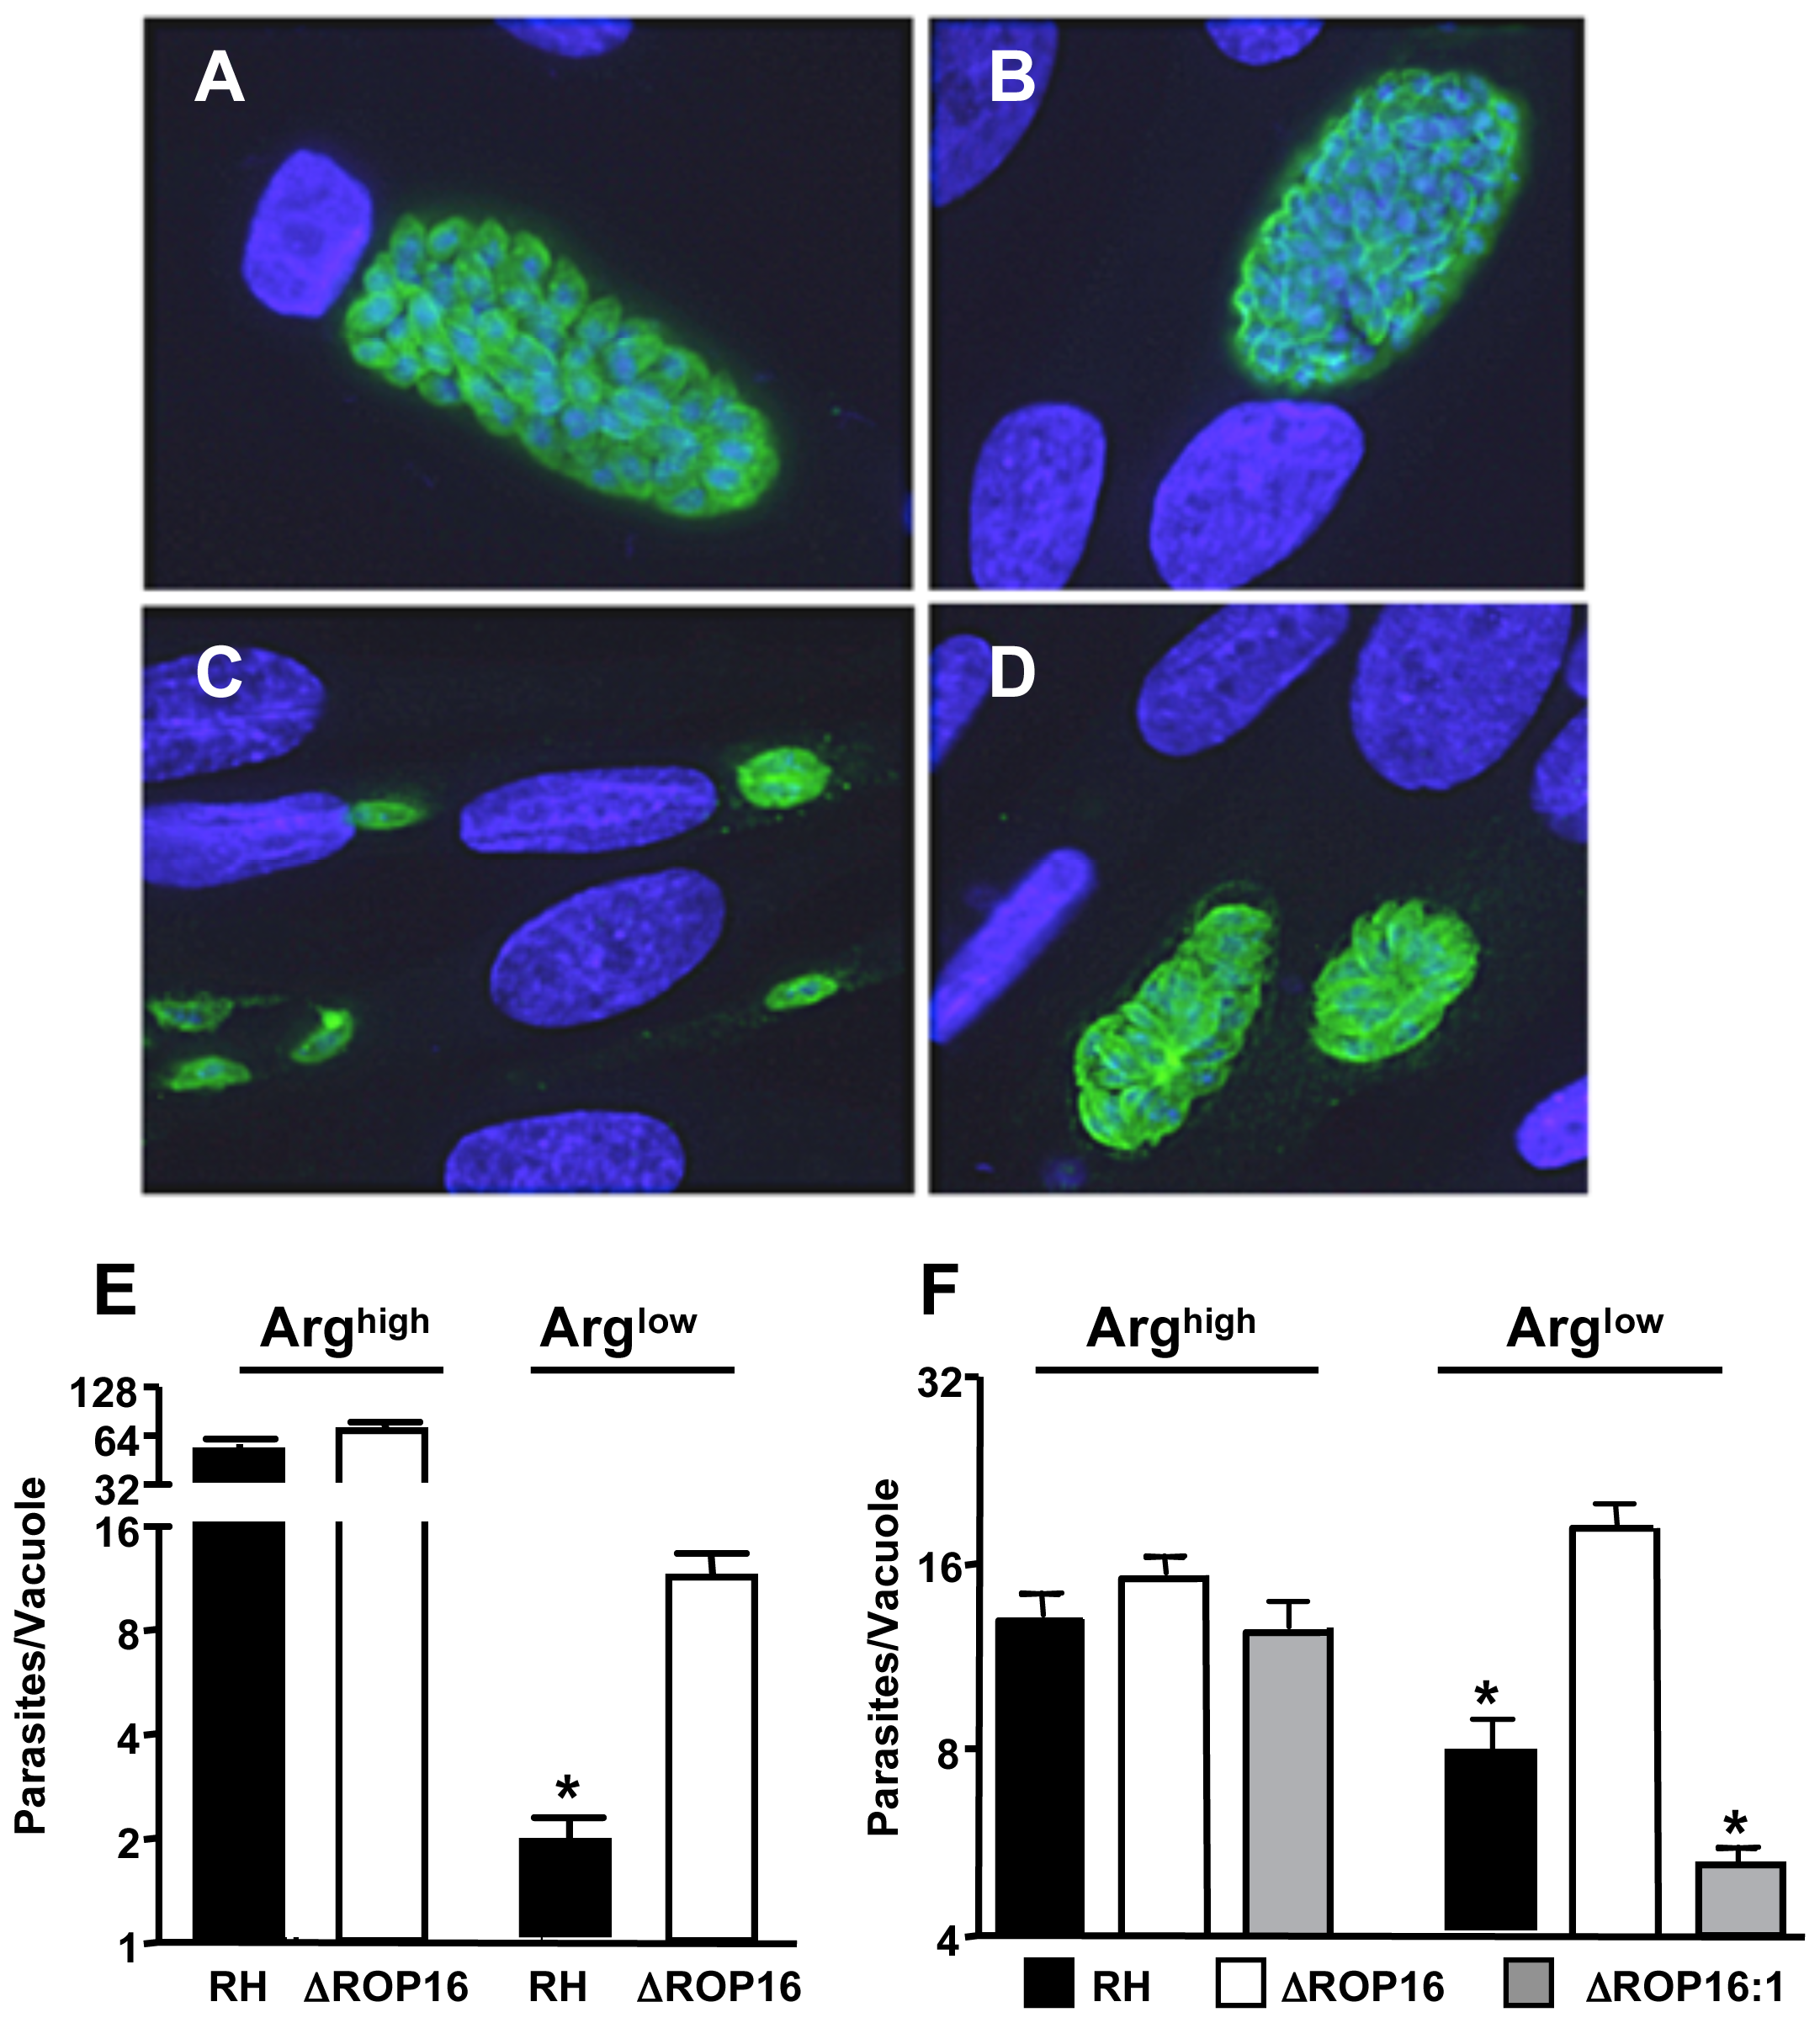 ΔROP16 parasites are resistant to arginine deficient conditions.